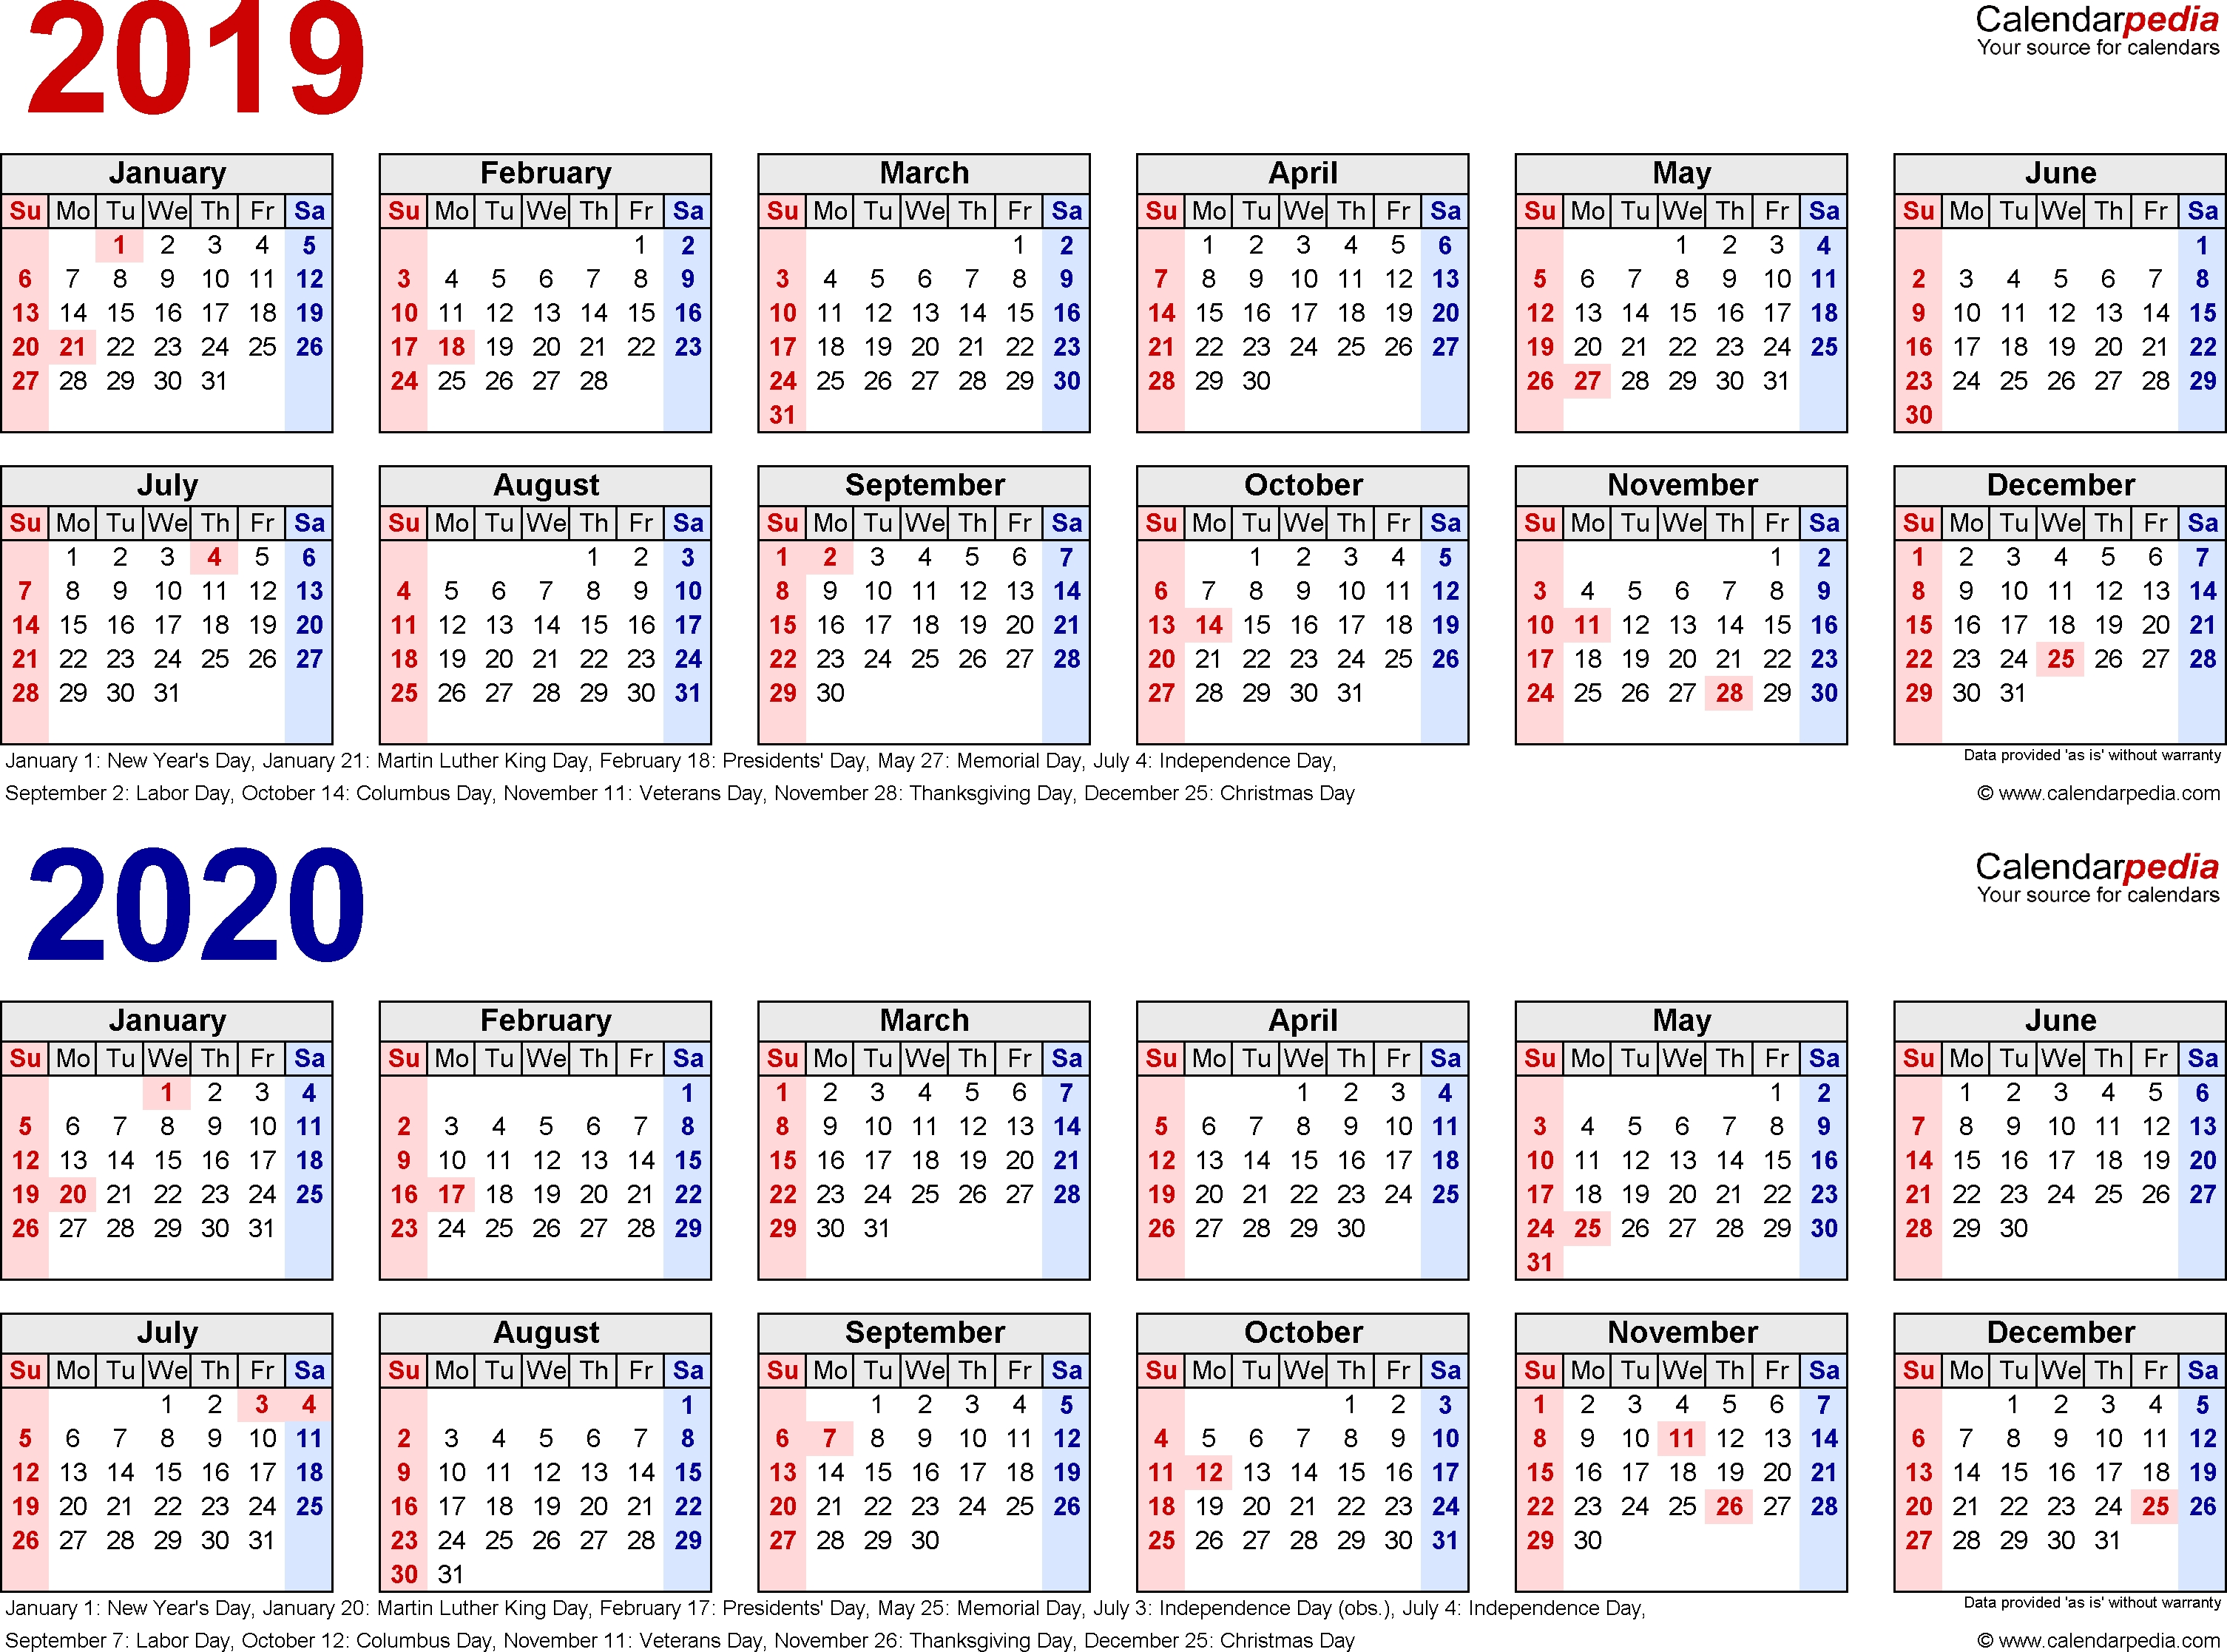 2019-2020 Calendar - Free Printable Two-Year Pdf Calendars intended for 2019-2020 Printable Calendar One Page